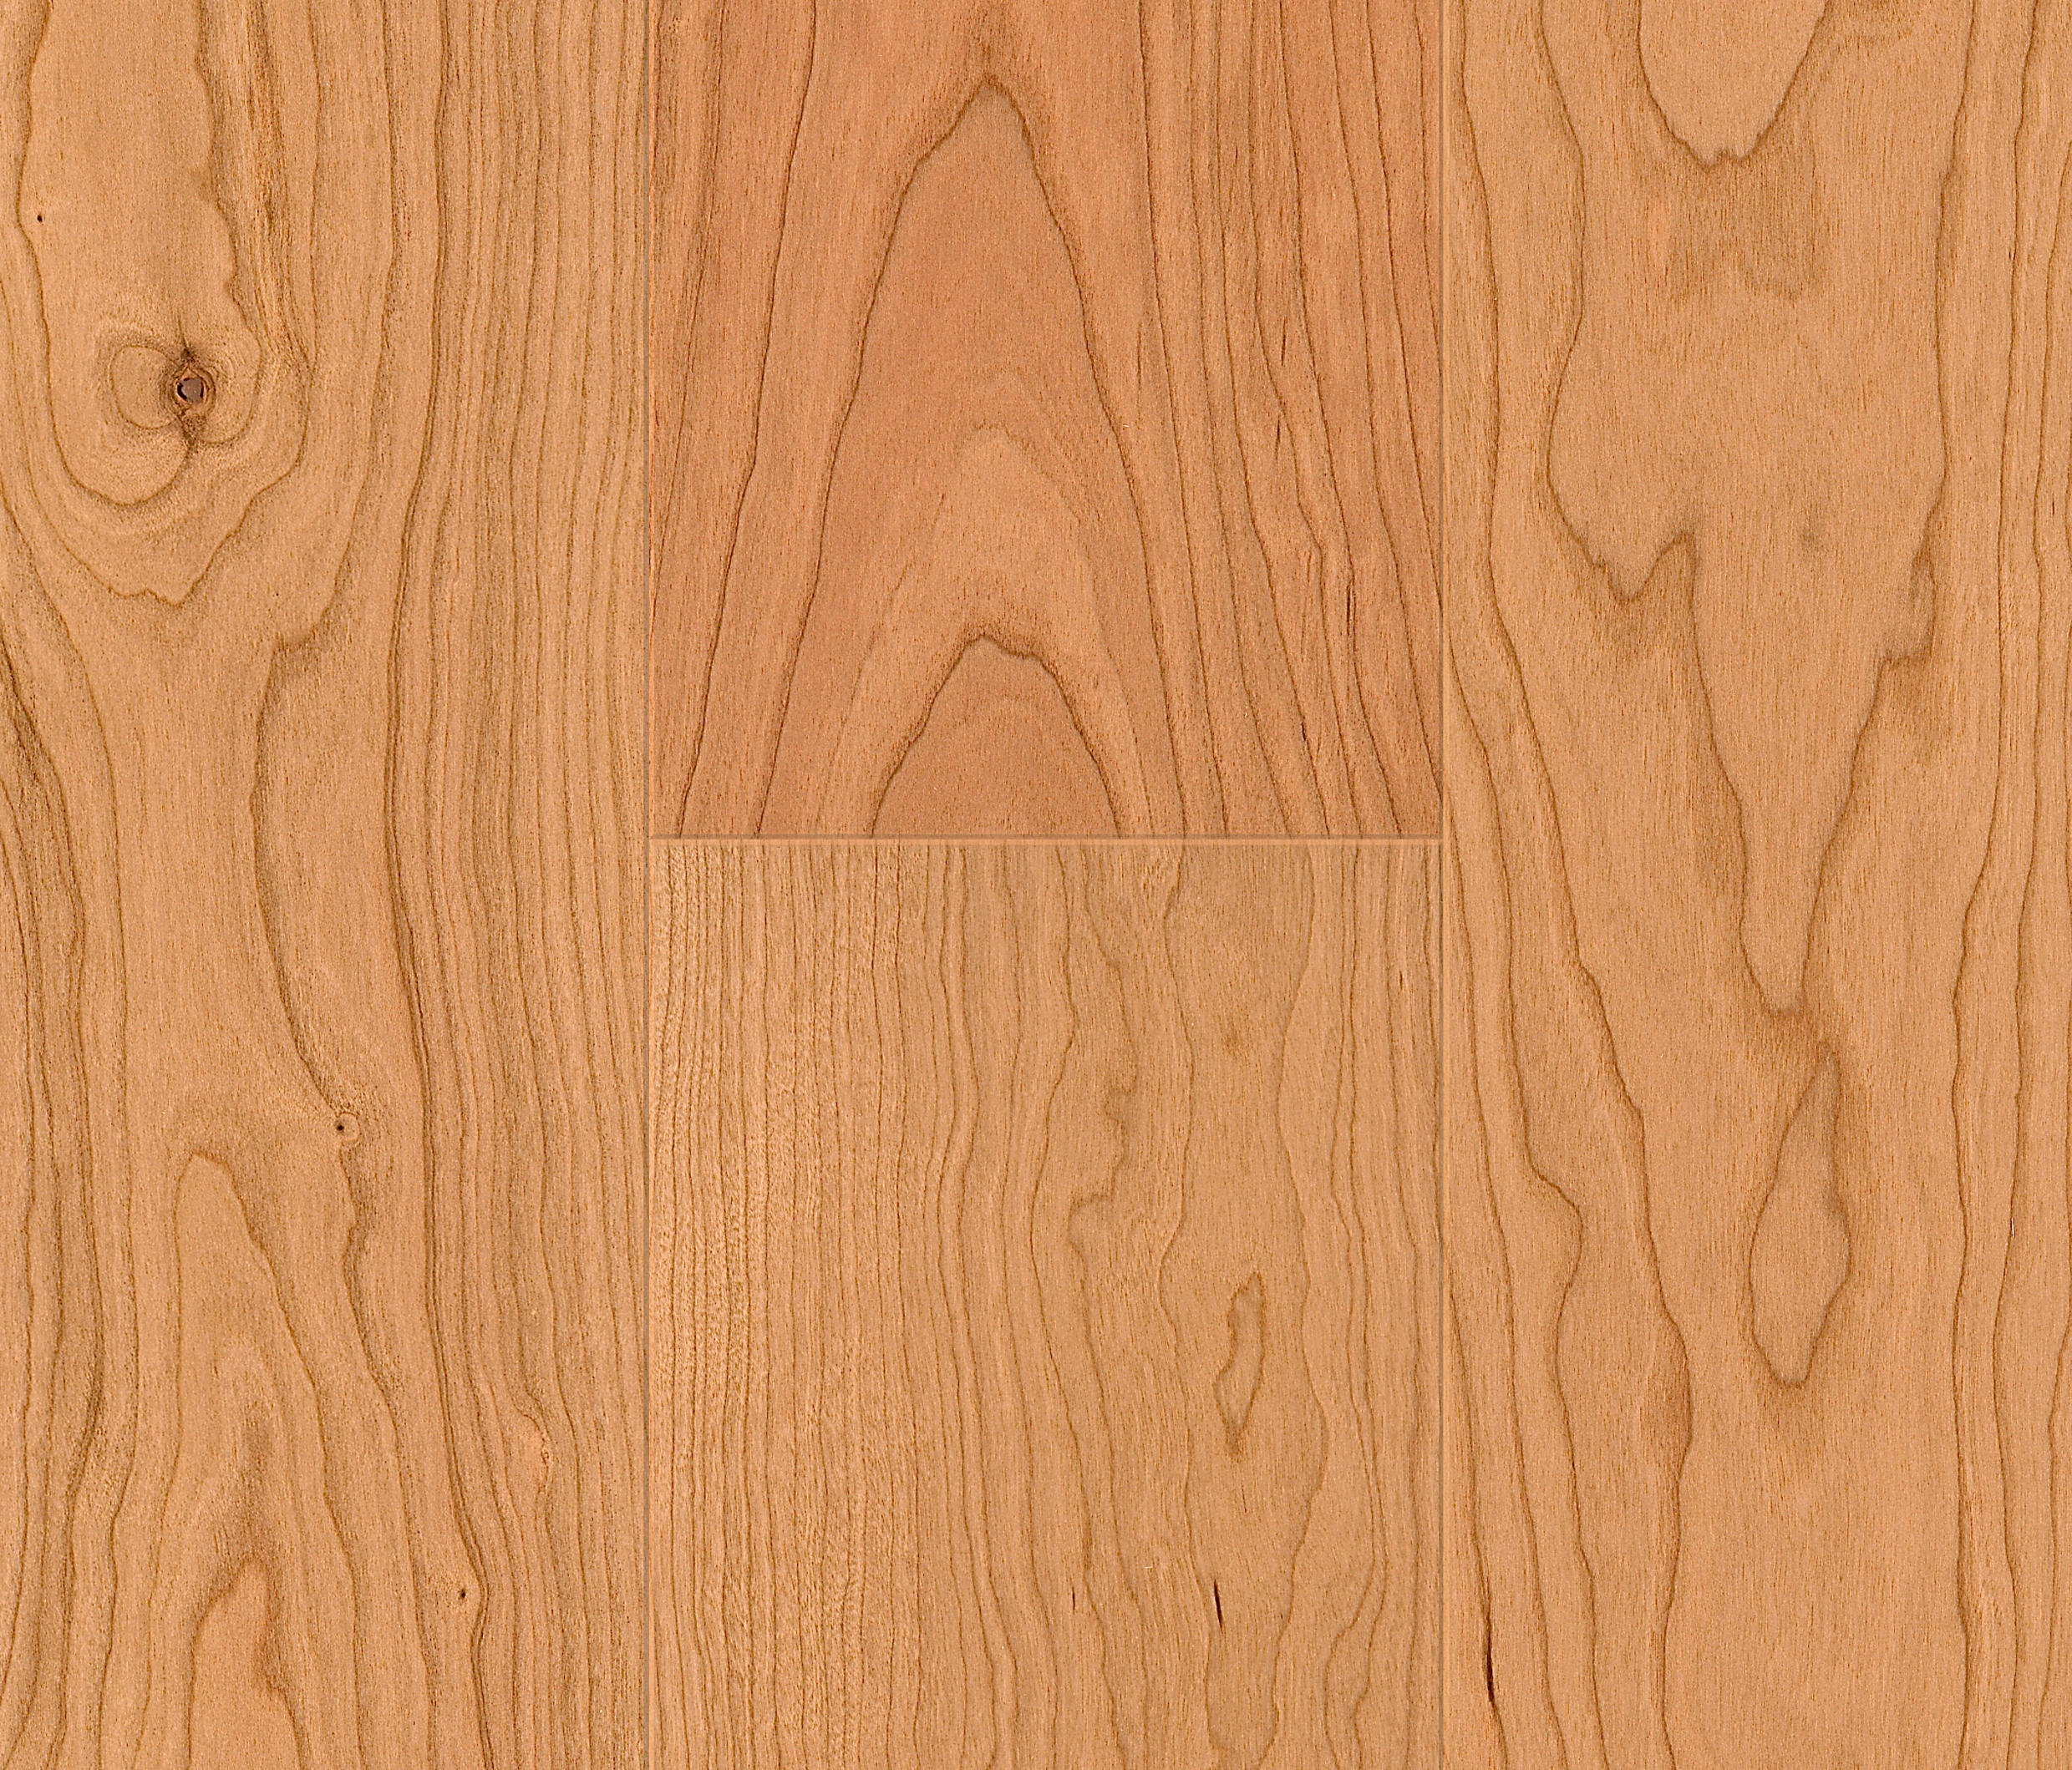 floors walnut american hardwood hand brown scraped rs natural floor flooring wood lg hse